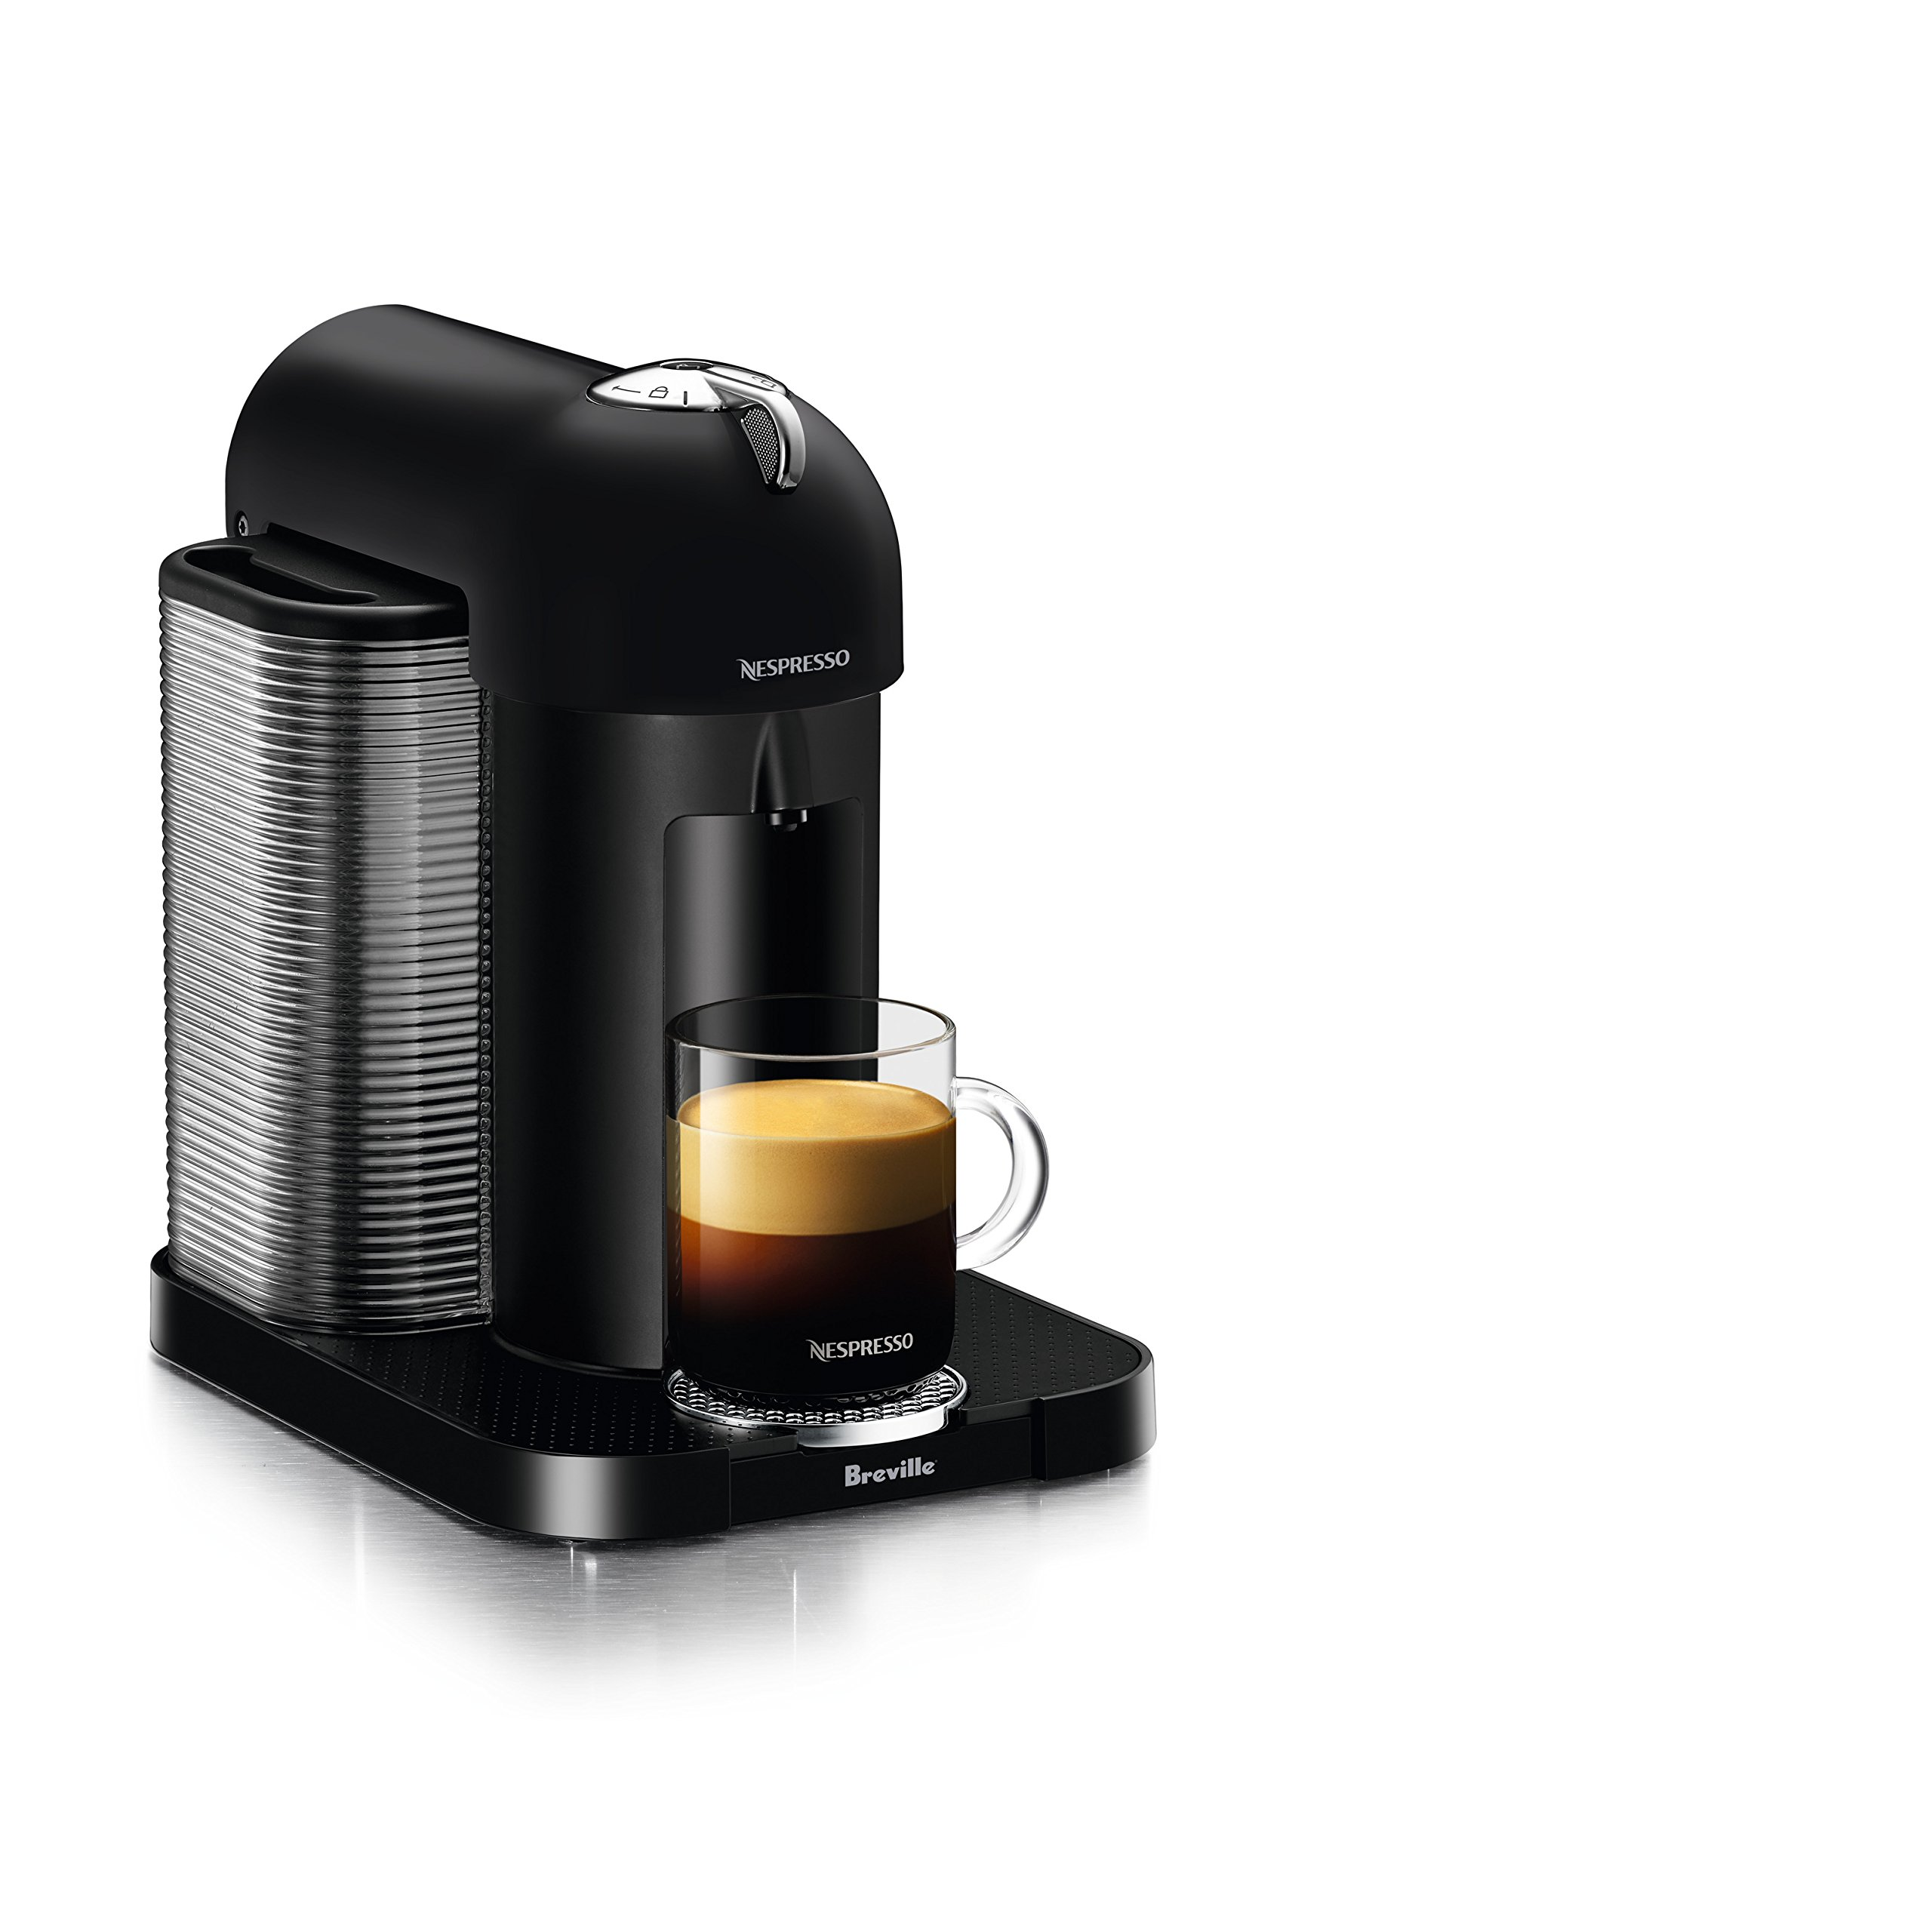 Nespresso Vertuo Coffee and Espresso Machine by Breville, Matte Black by Breville (Image #1)